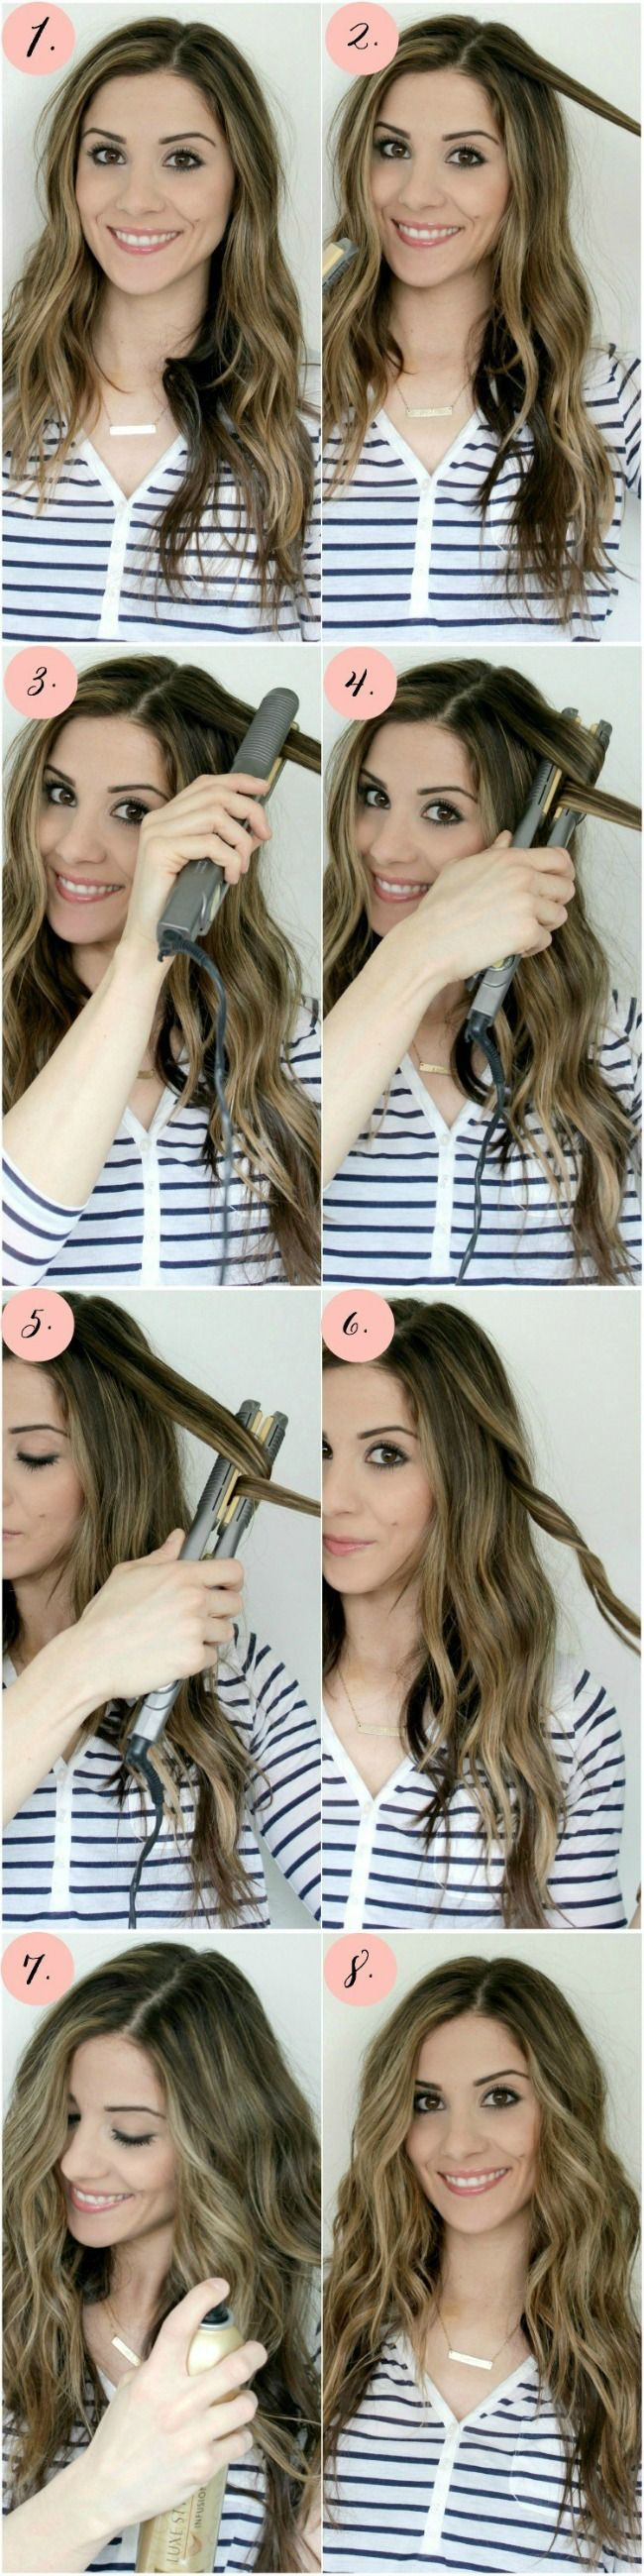 The 11 Best Flat Iron Tricks For The Hair The Eleven Best Hair Styles Long Hair Styles Flat Iron Curls